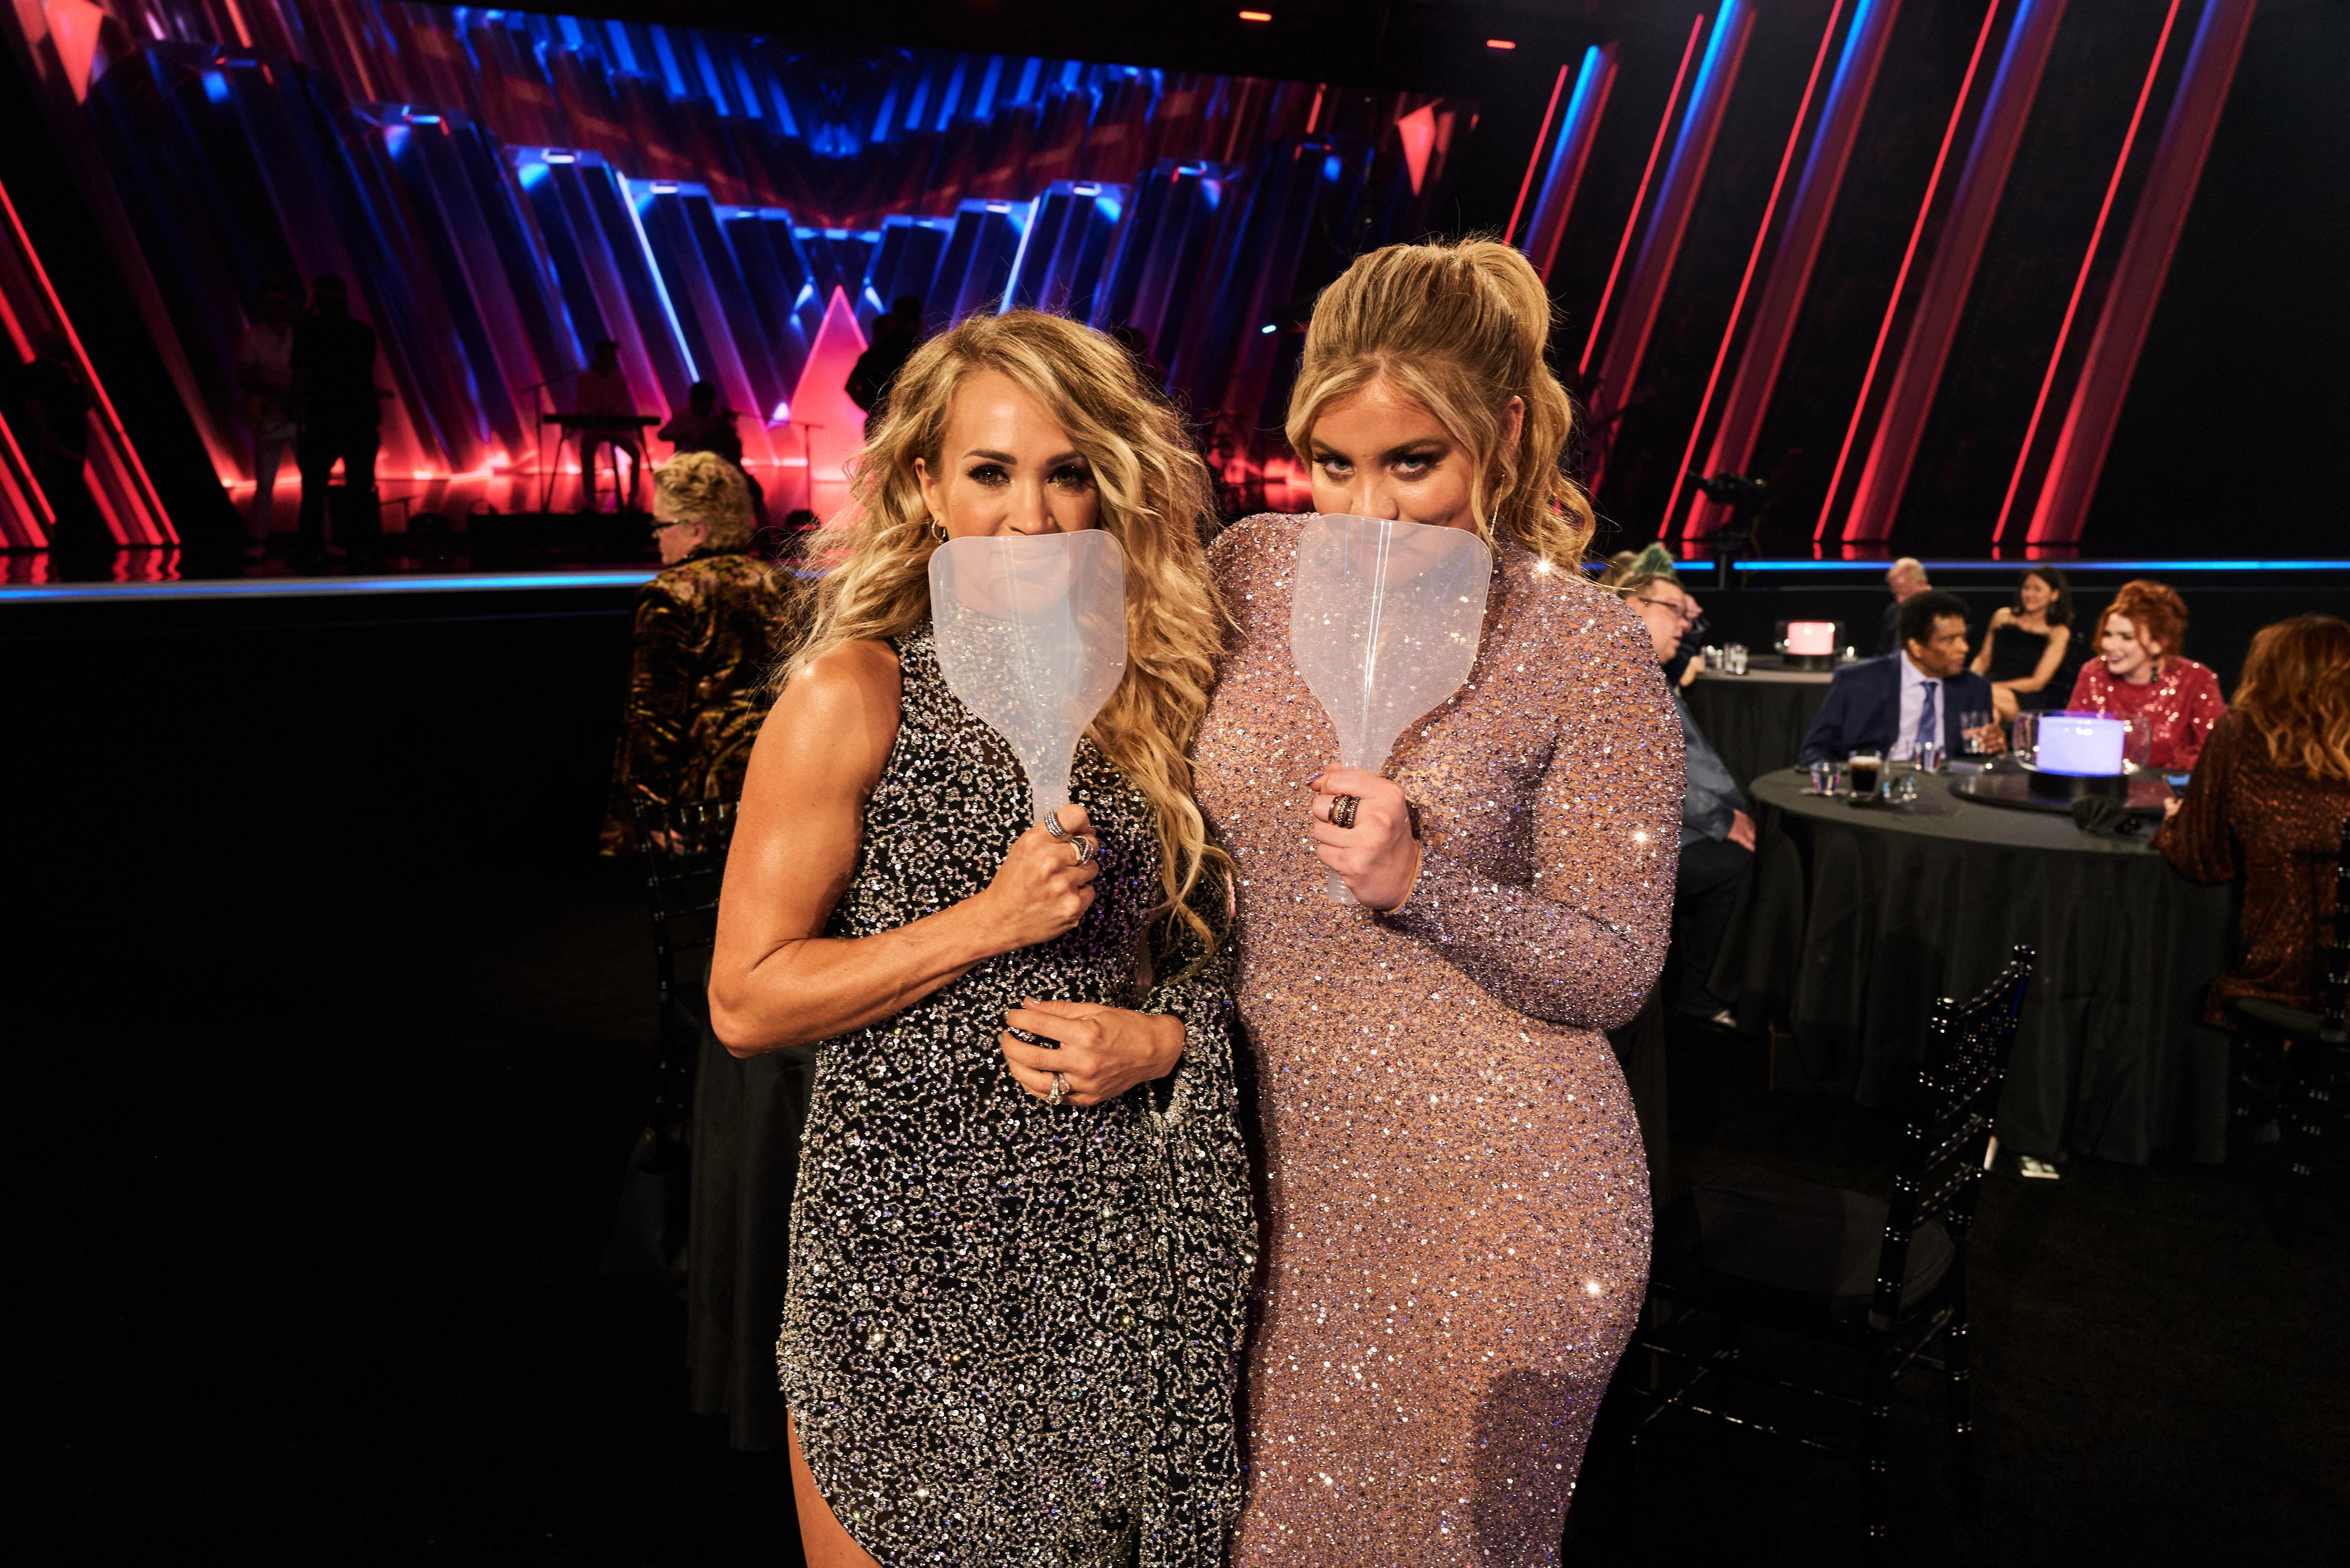 Carrie Underwood and Lauren Alaina attend the the 54th Annual CMA Awards at Nashville's Music City Center on Wednesday, Nov. 11, 2020 in Nashville. (Photo: John Shearer/Getty Images for CMA)